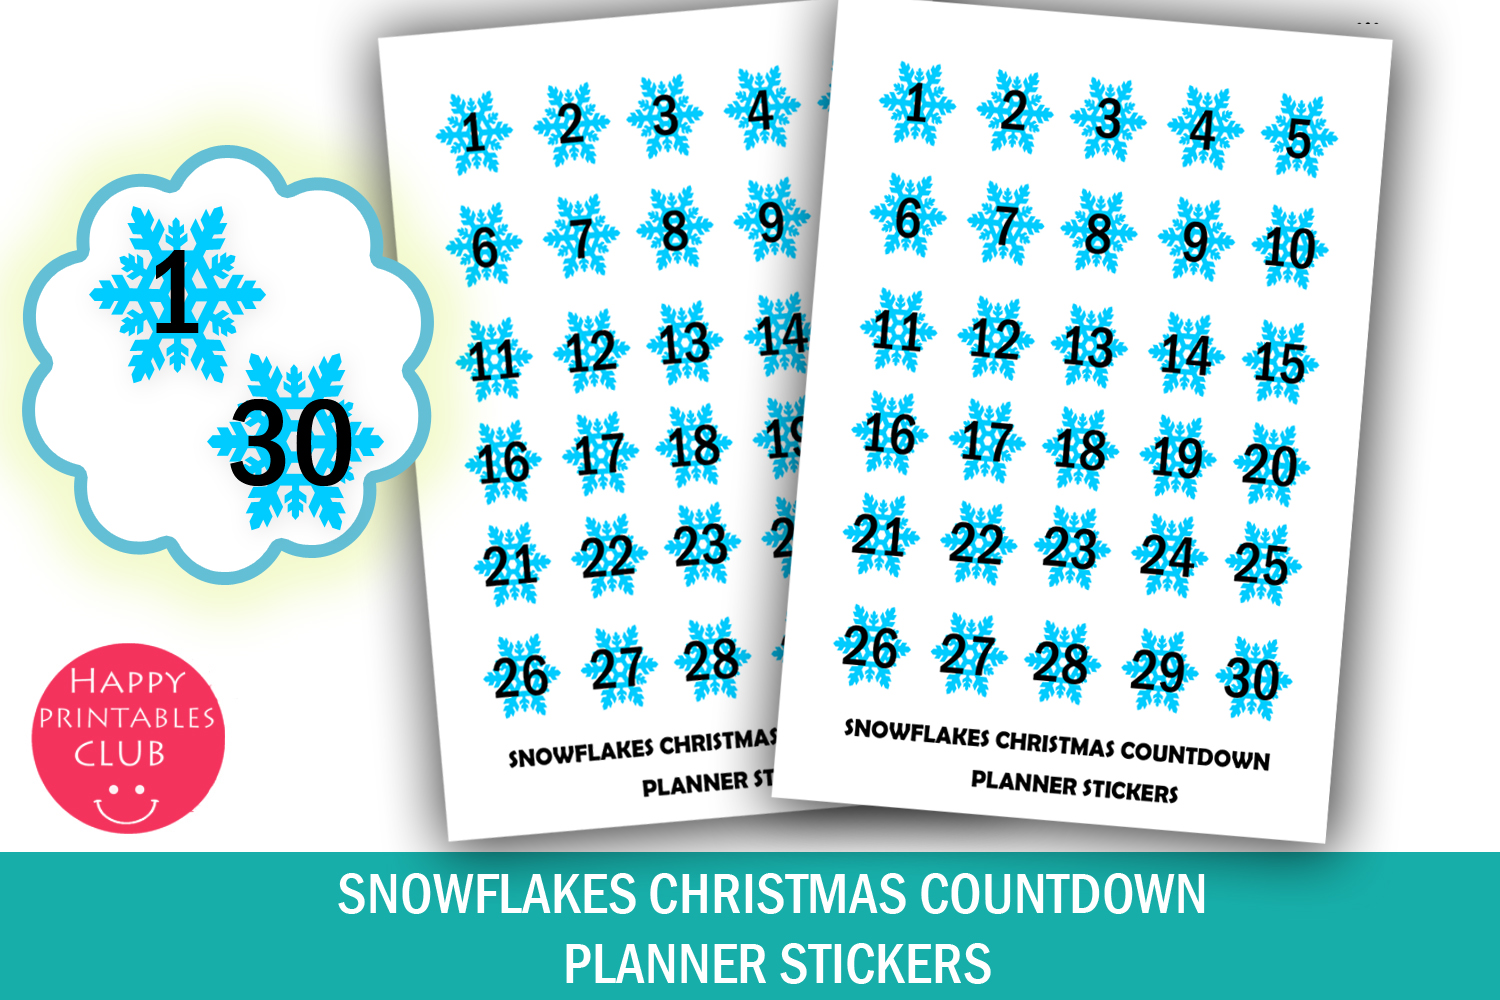 Download Free Snowflakes Christmas Countdown Planner Stickers Graphic By Happy for Cricut Explore, Silhouette and other cutting machines.